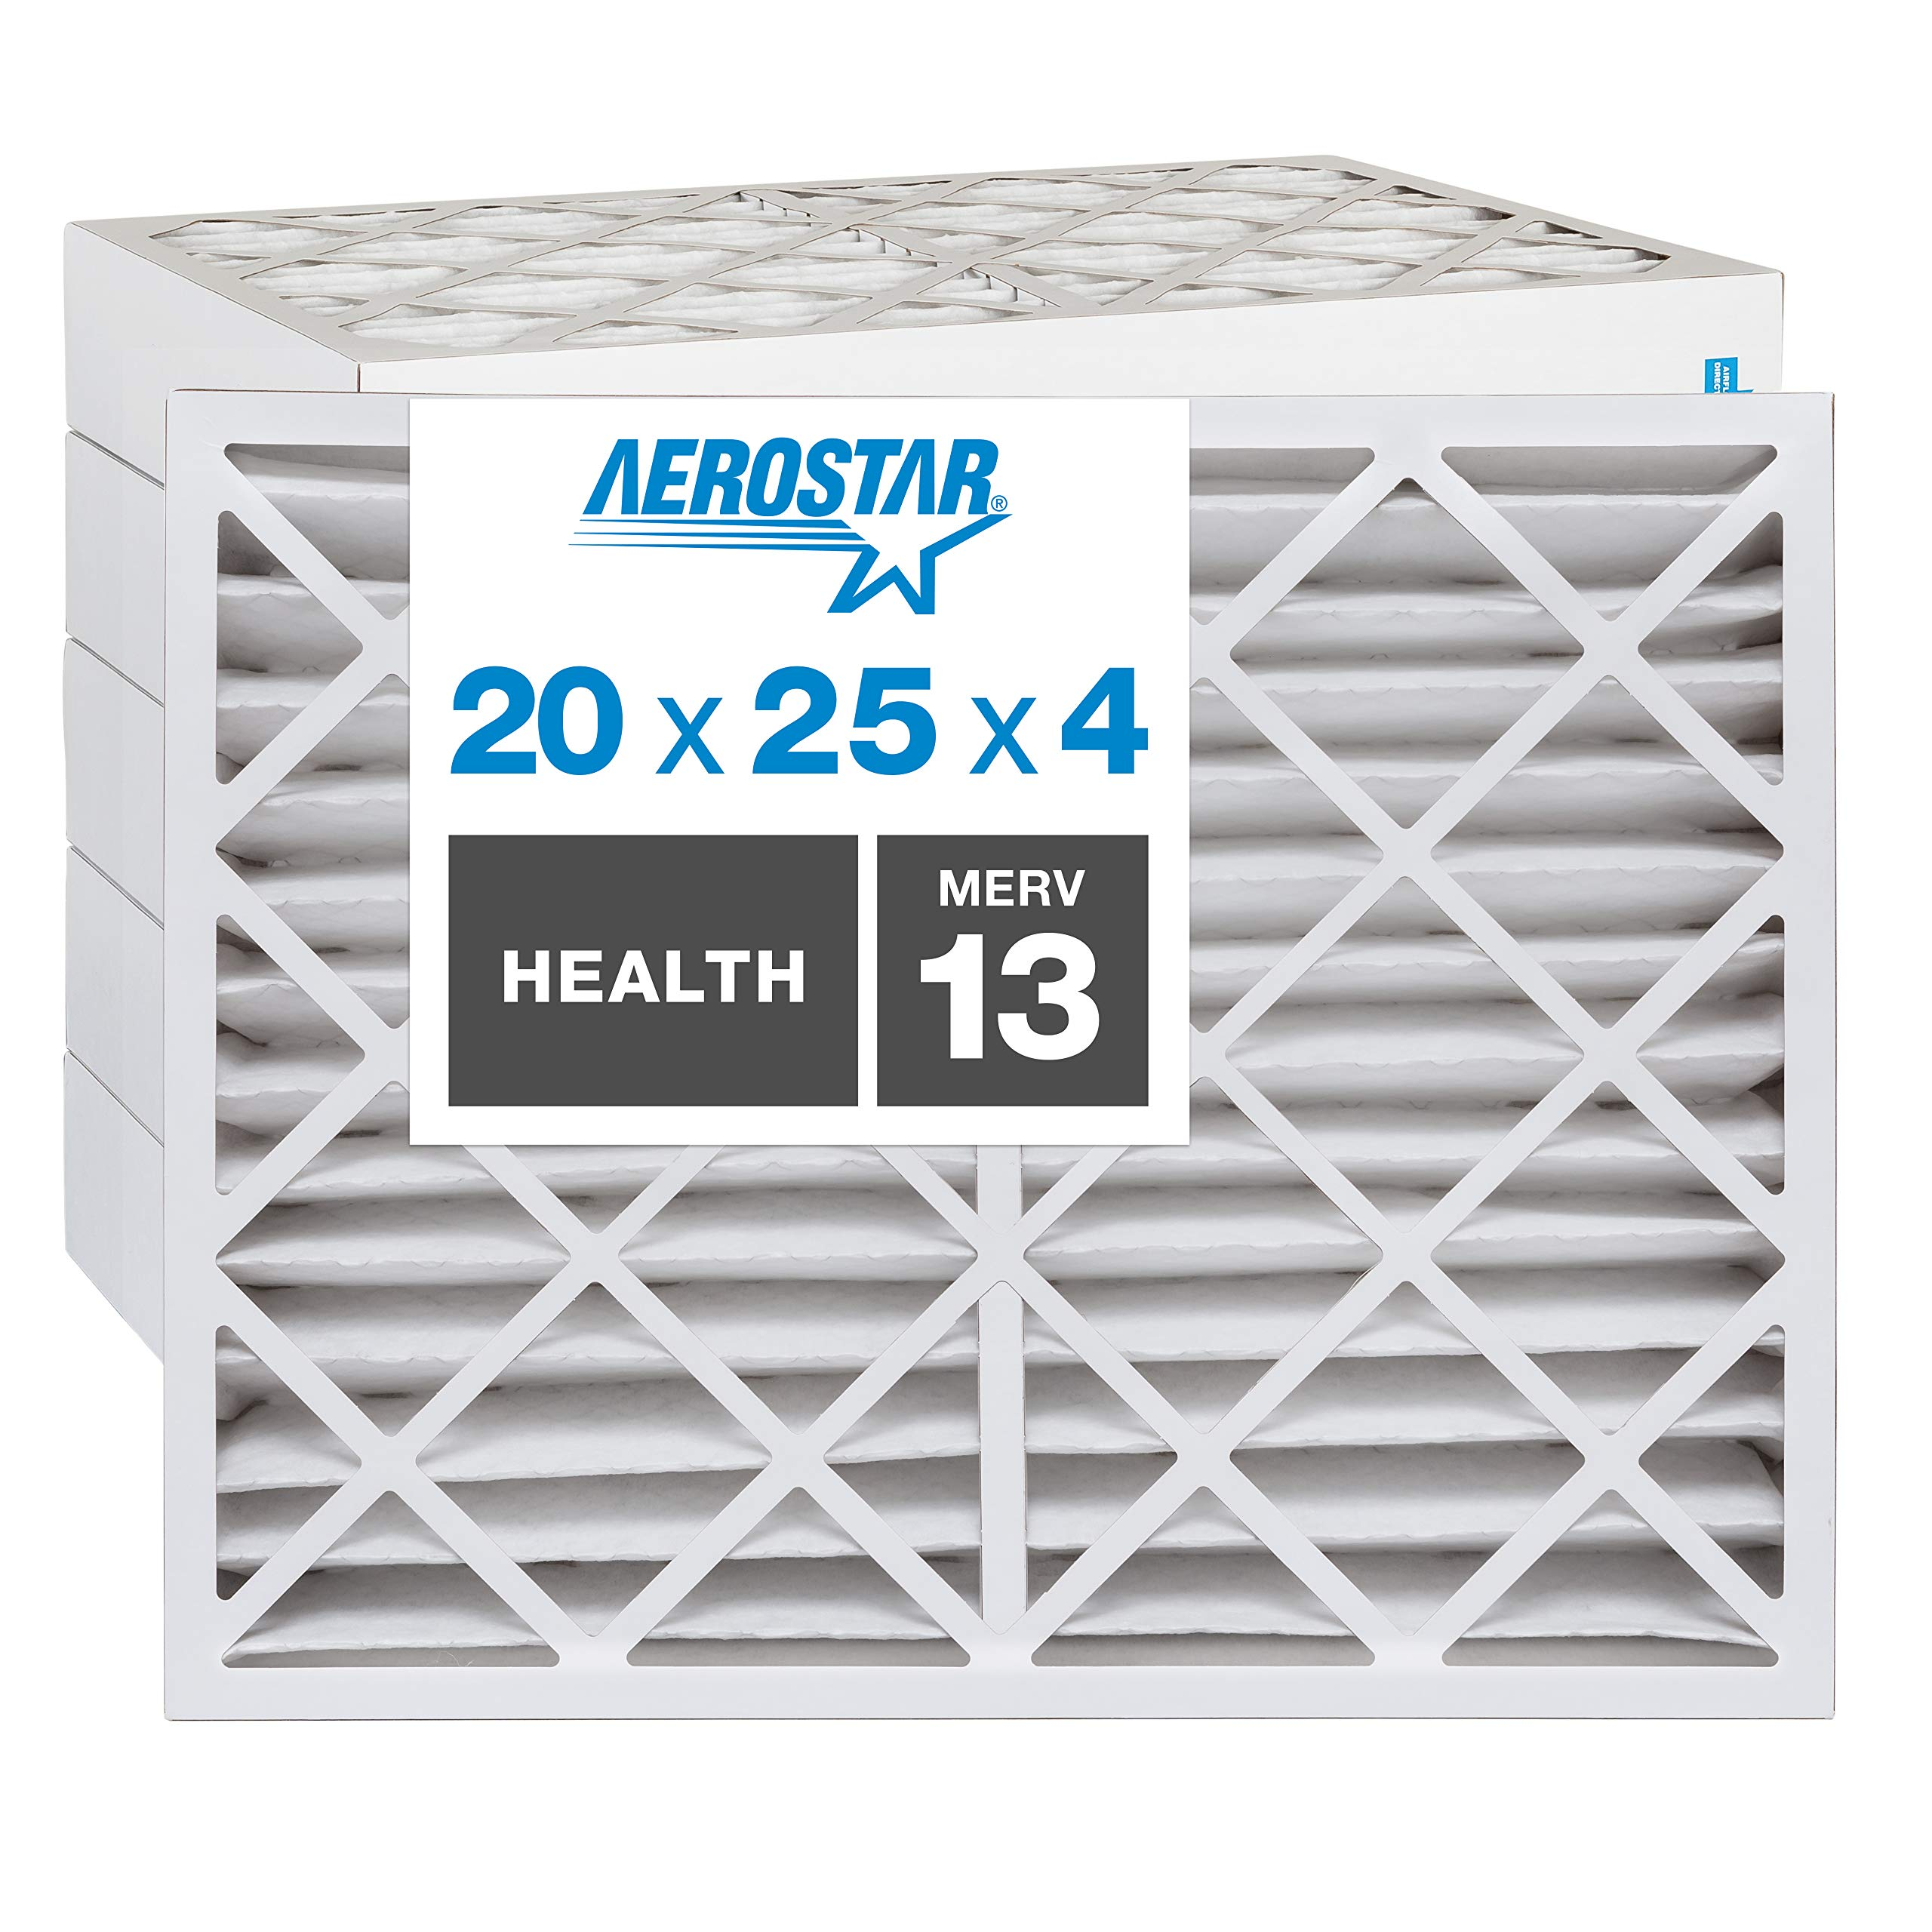 """Aerostar Home Max 20x25x4 MERV 13 Pleated Air Filter, Made in the USA, Captures Virus Particles, (Actual Size: 19 1/2""""x24 1/2""""x3 3/4""""), 6-Pack"""